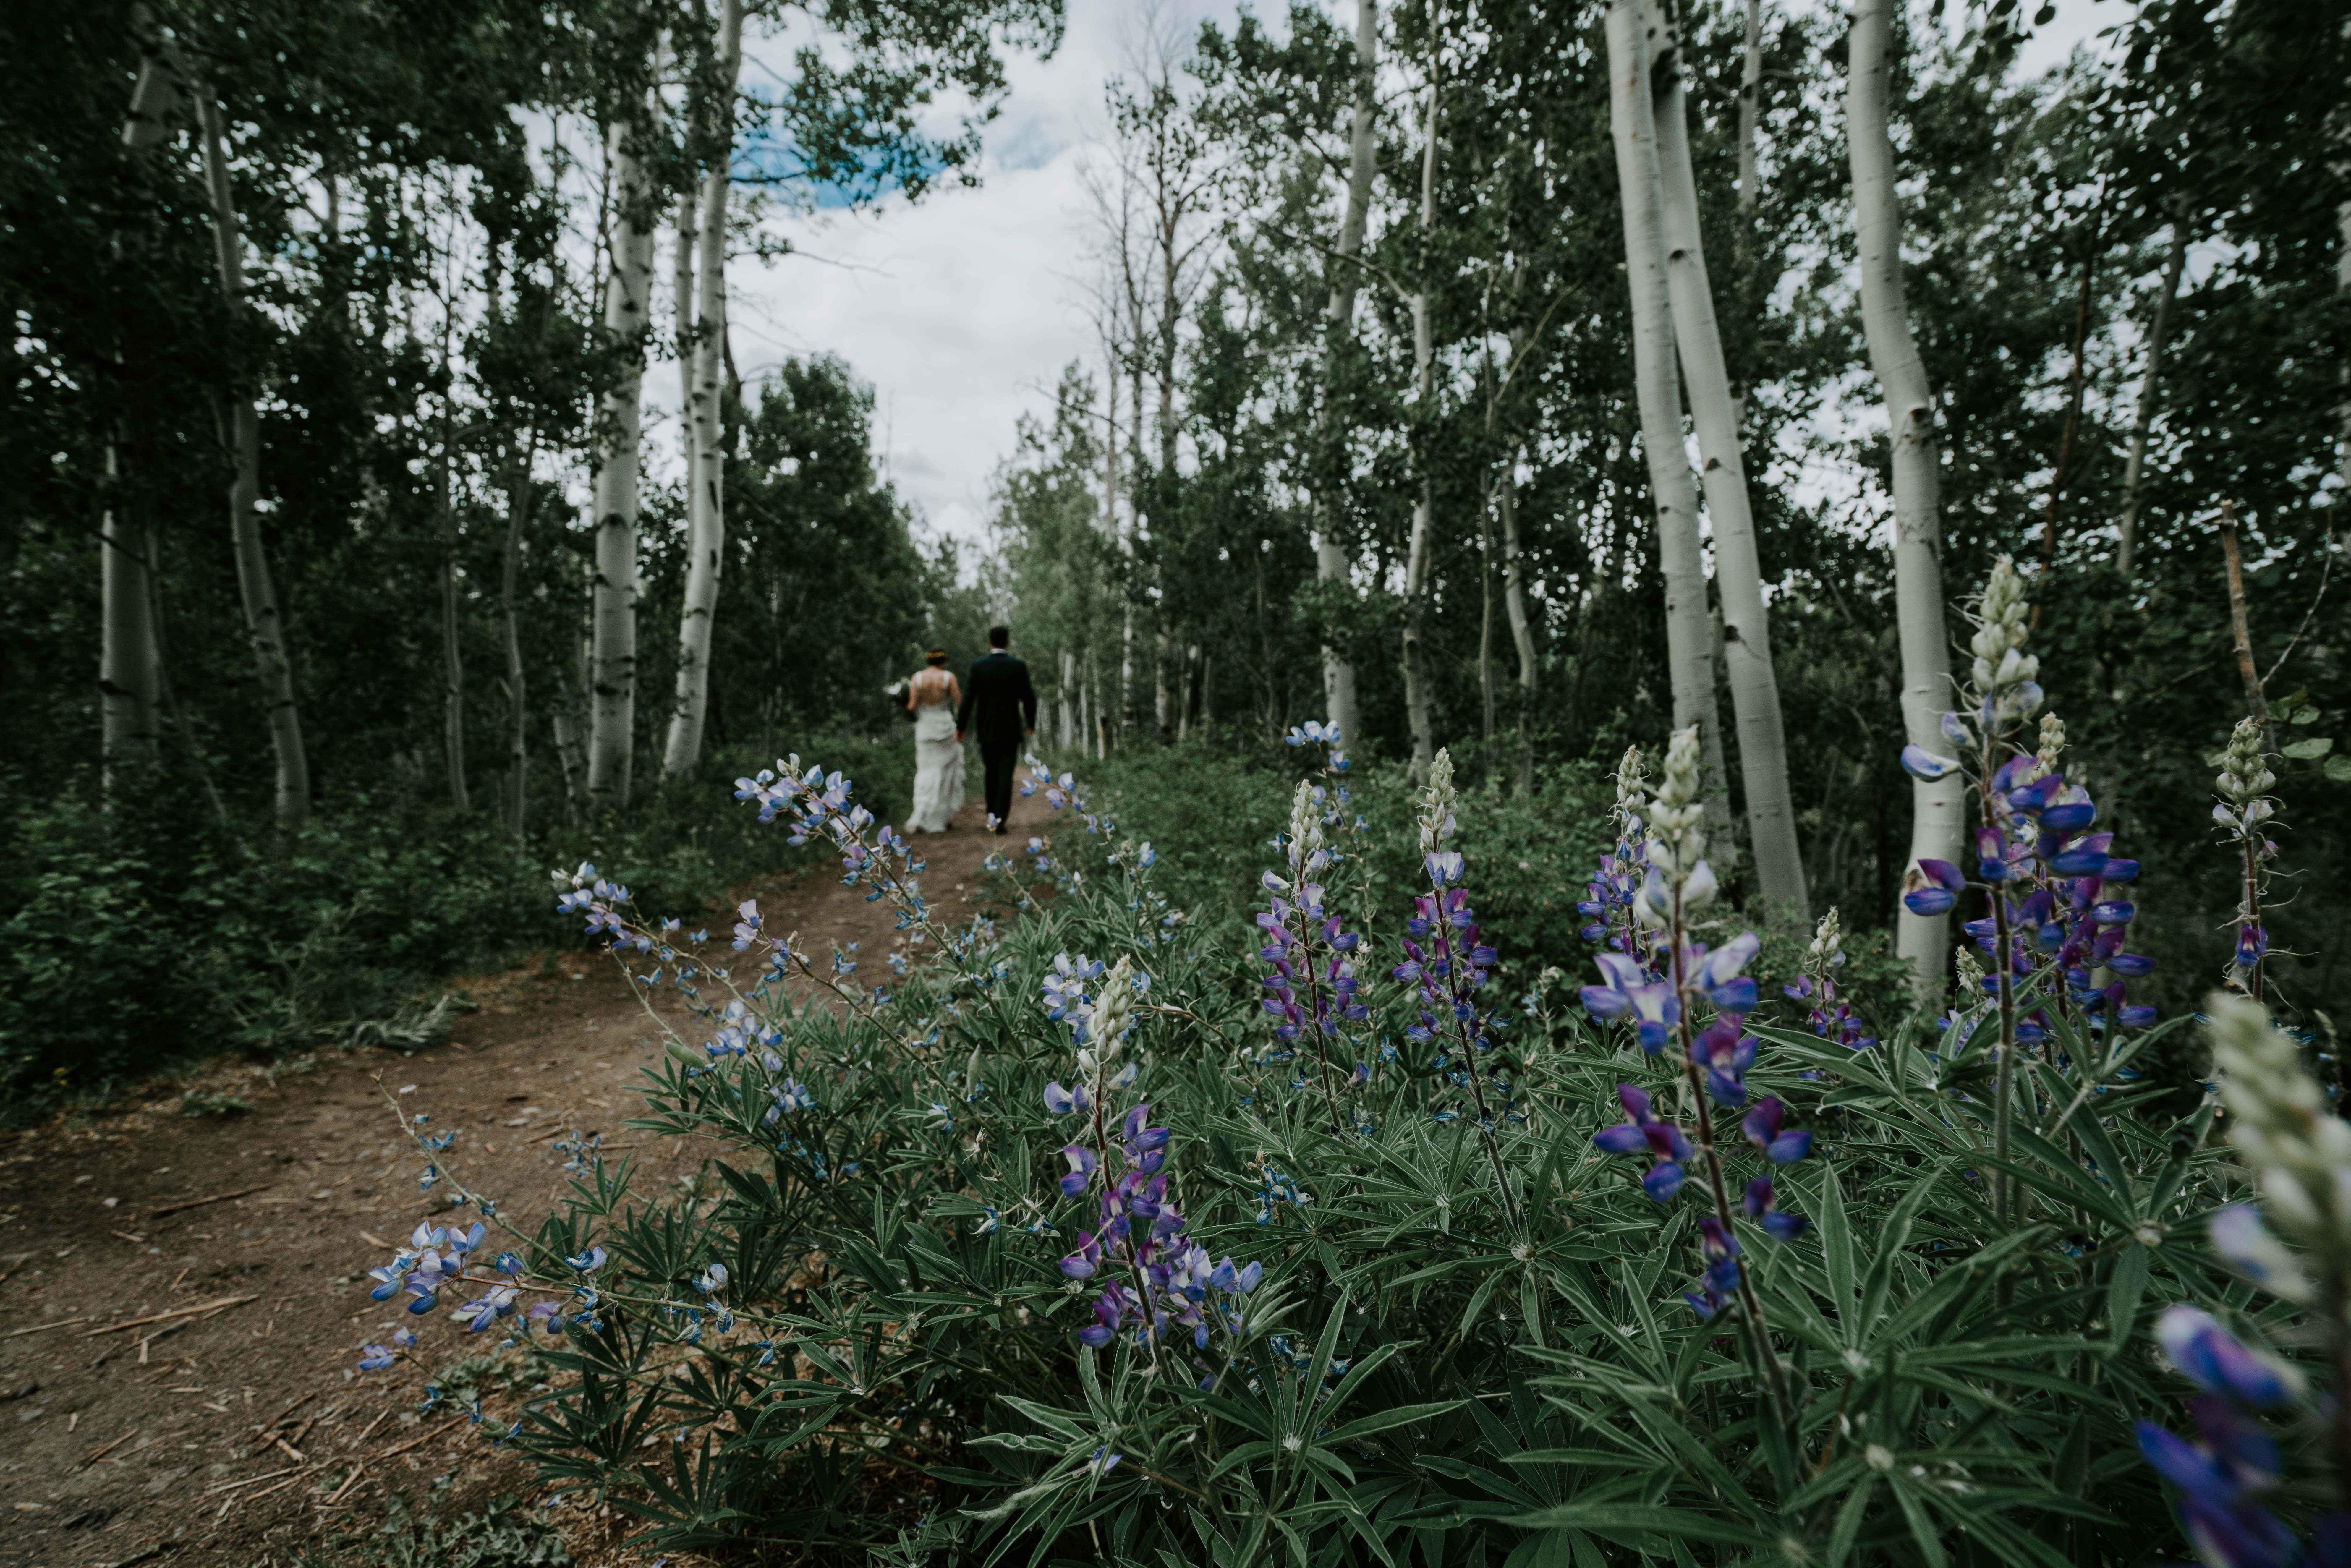 Laura_Alexe_Wedding_Crested_Butte_MegONeillPhotography__180616_82